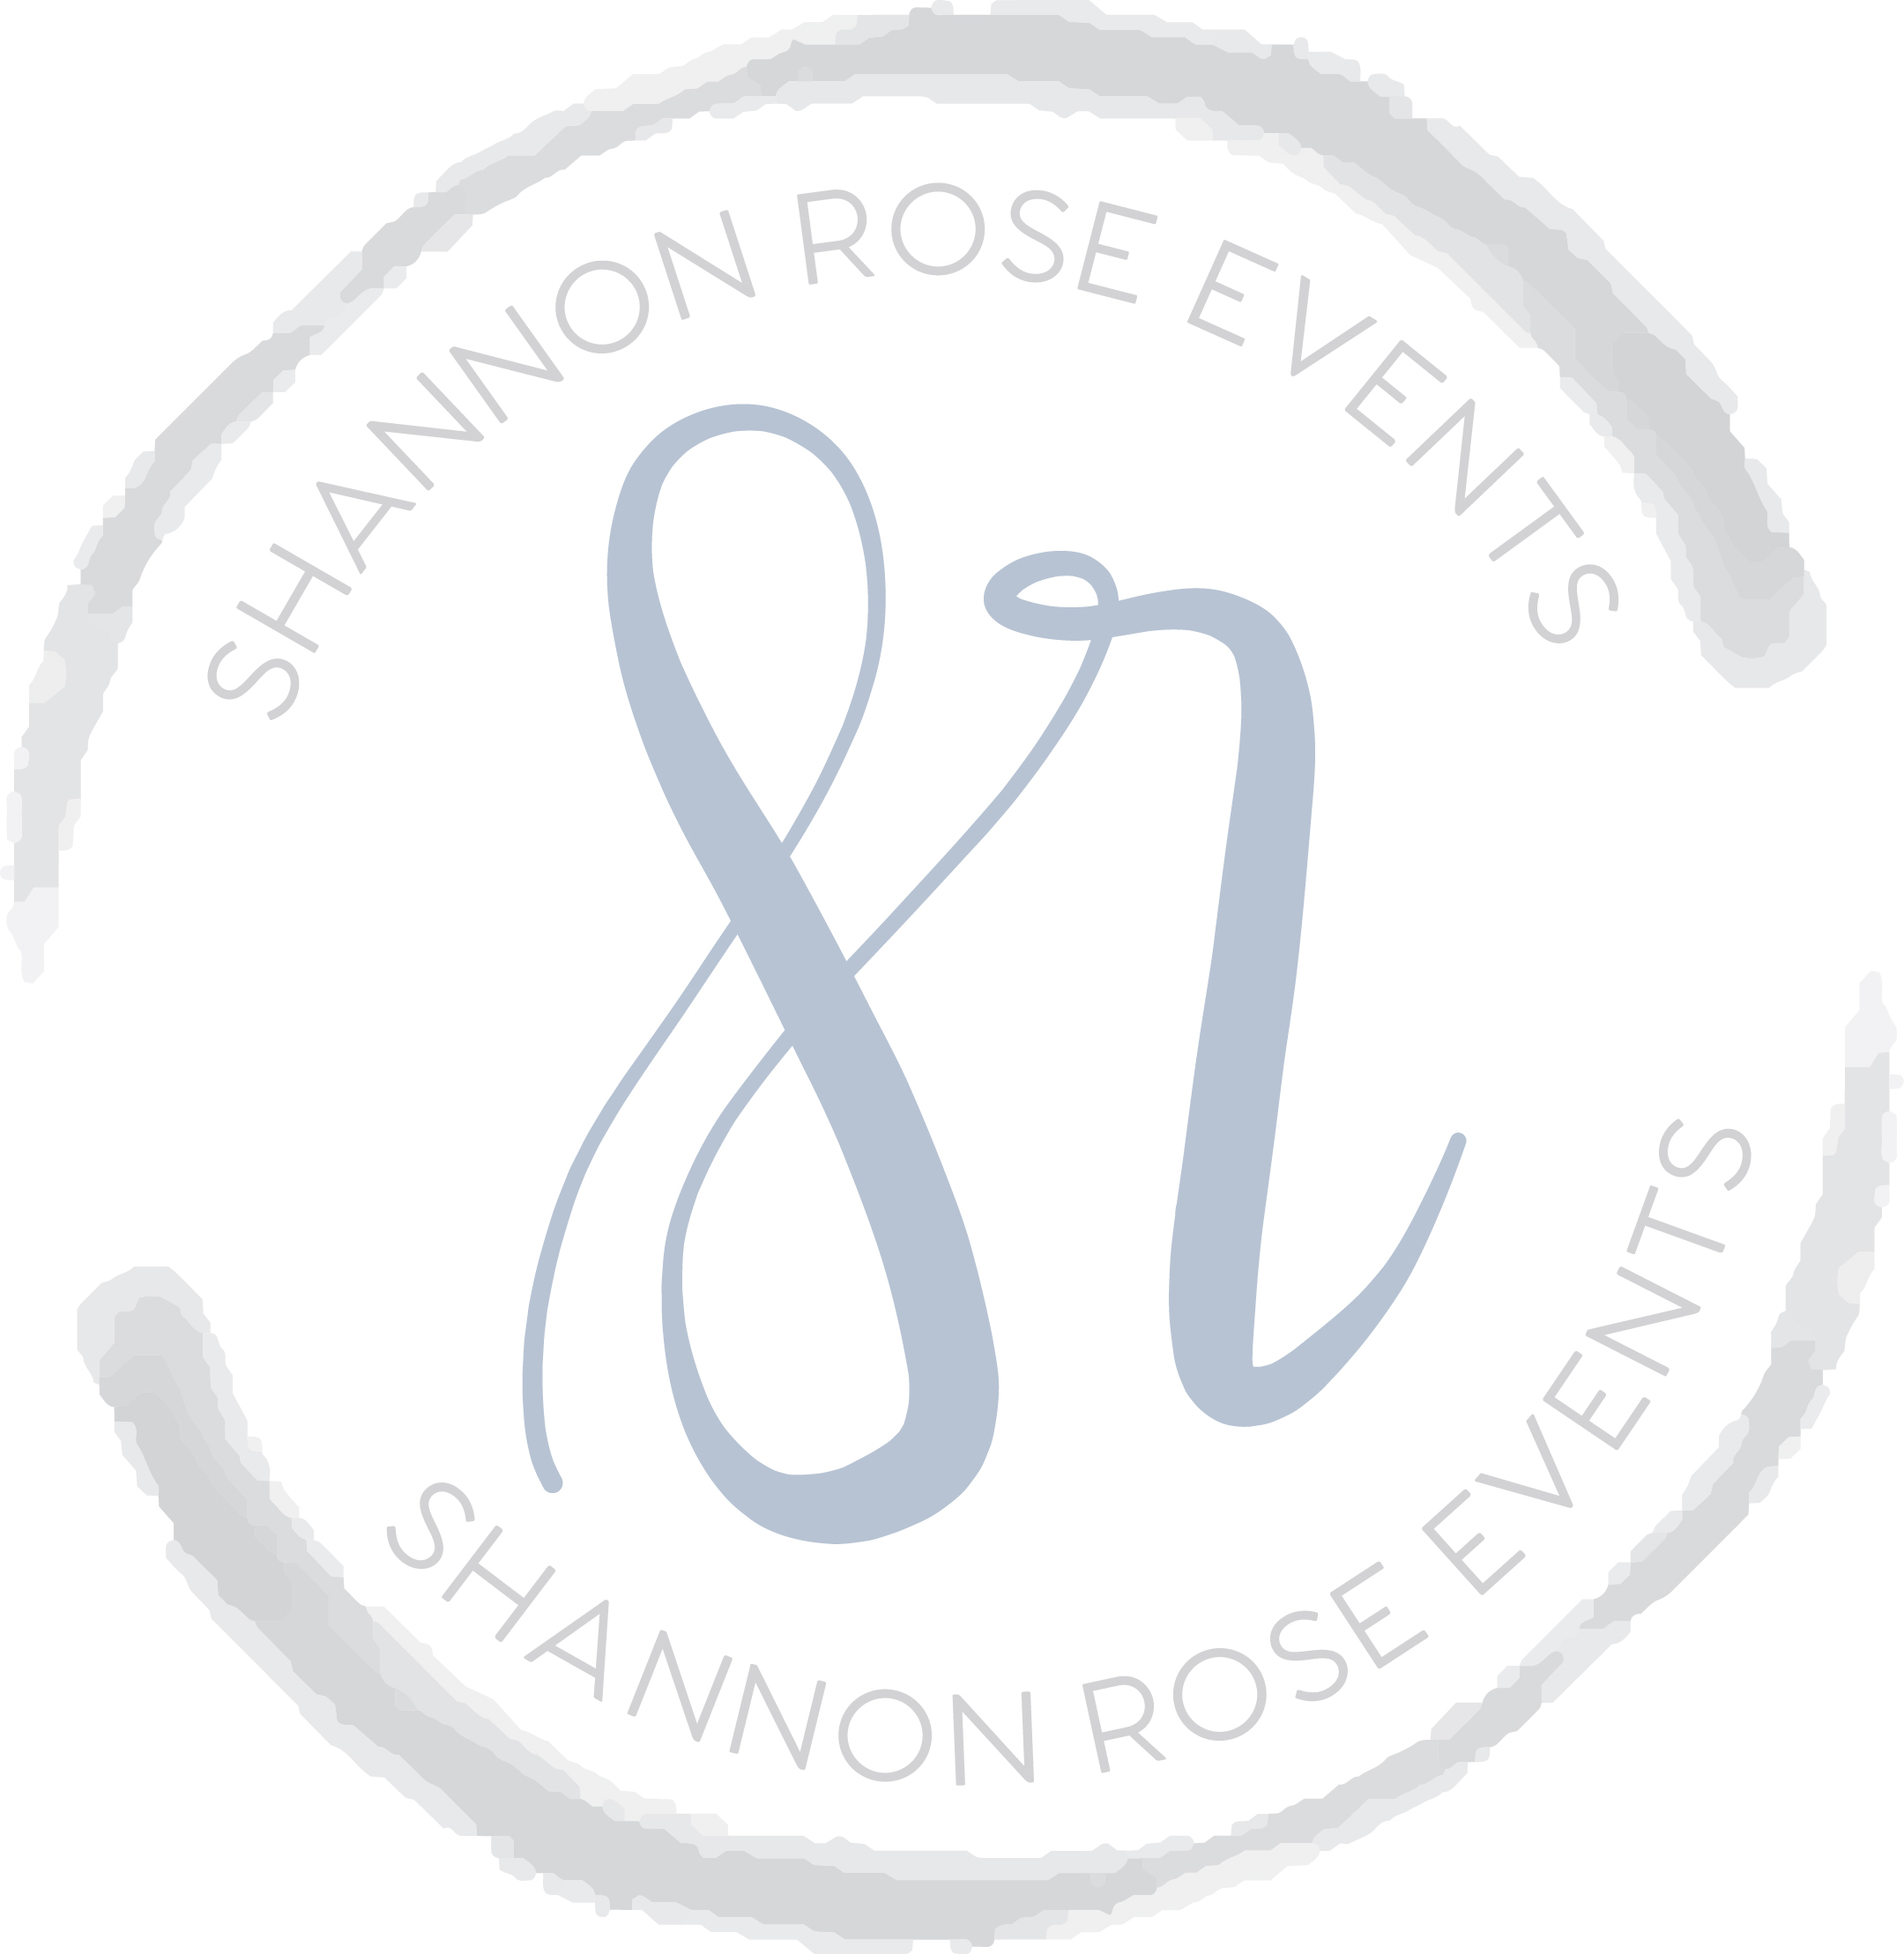 Shannon Rose Events - North Texas Wedding Wedding Planner